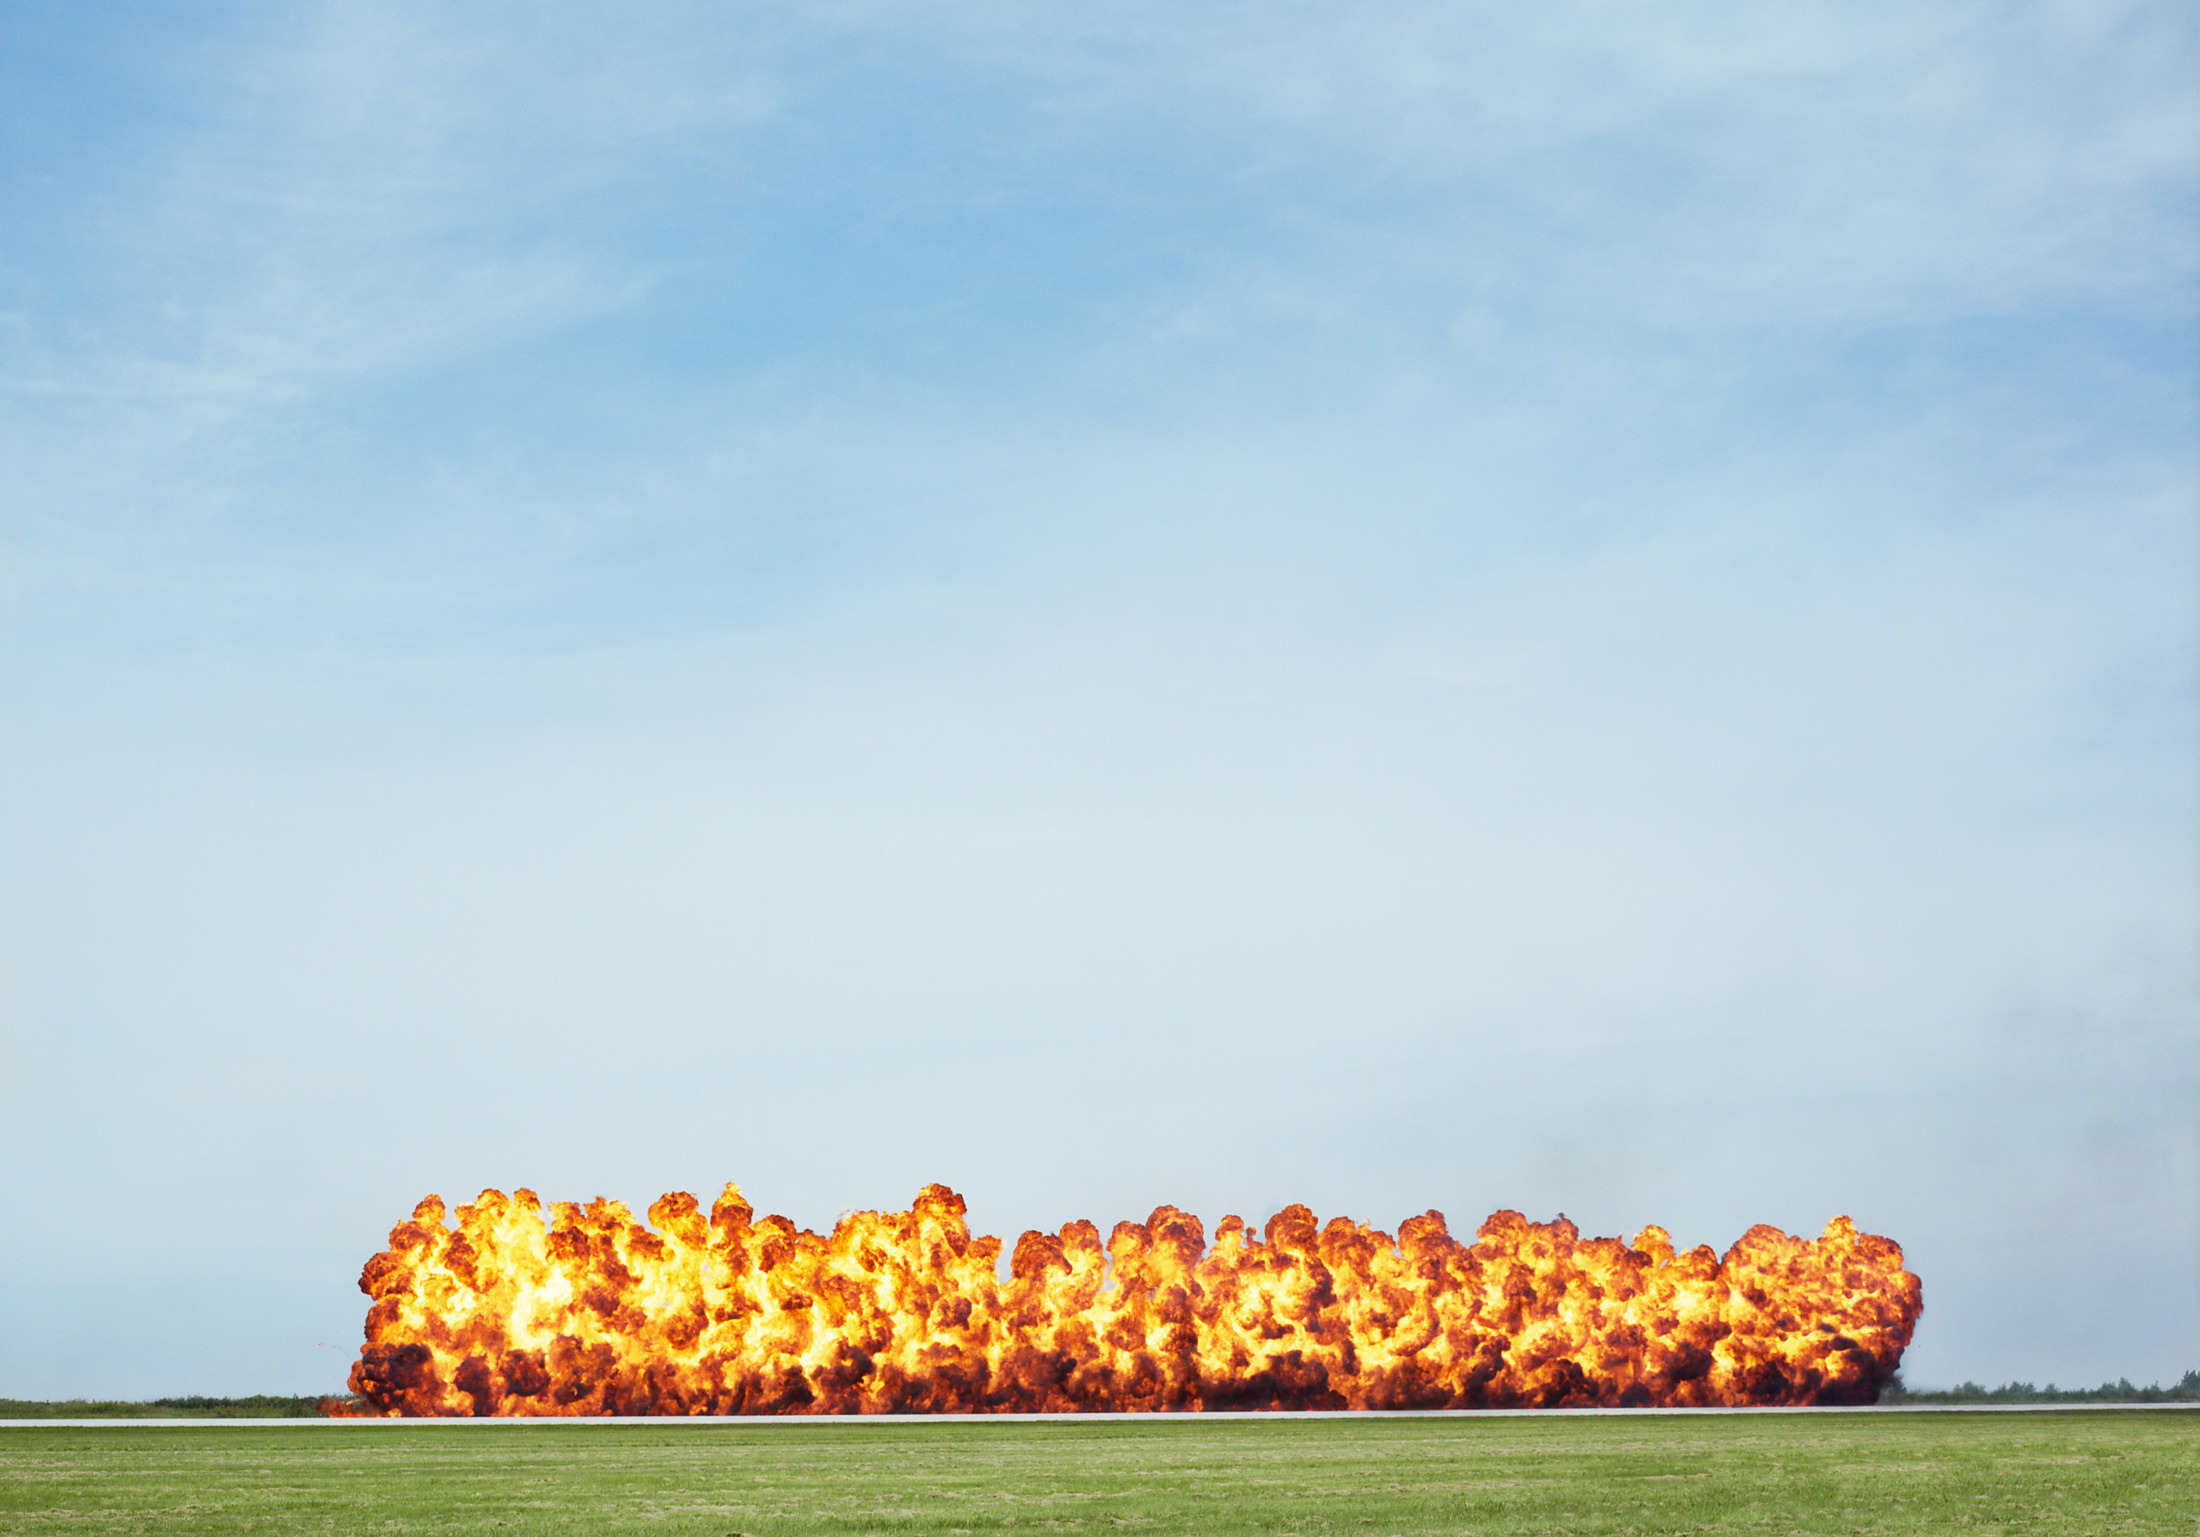 Wall of Fire, Labor Day, 2006 (Cleveland, OH) 28×40″ archival pigment print 2006